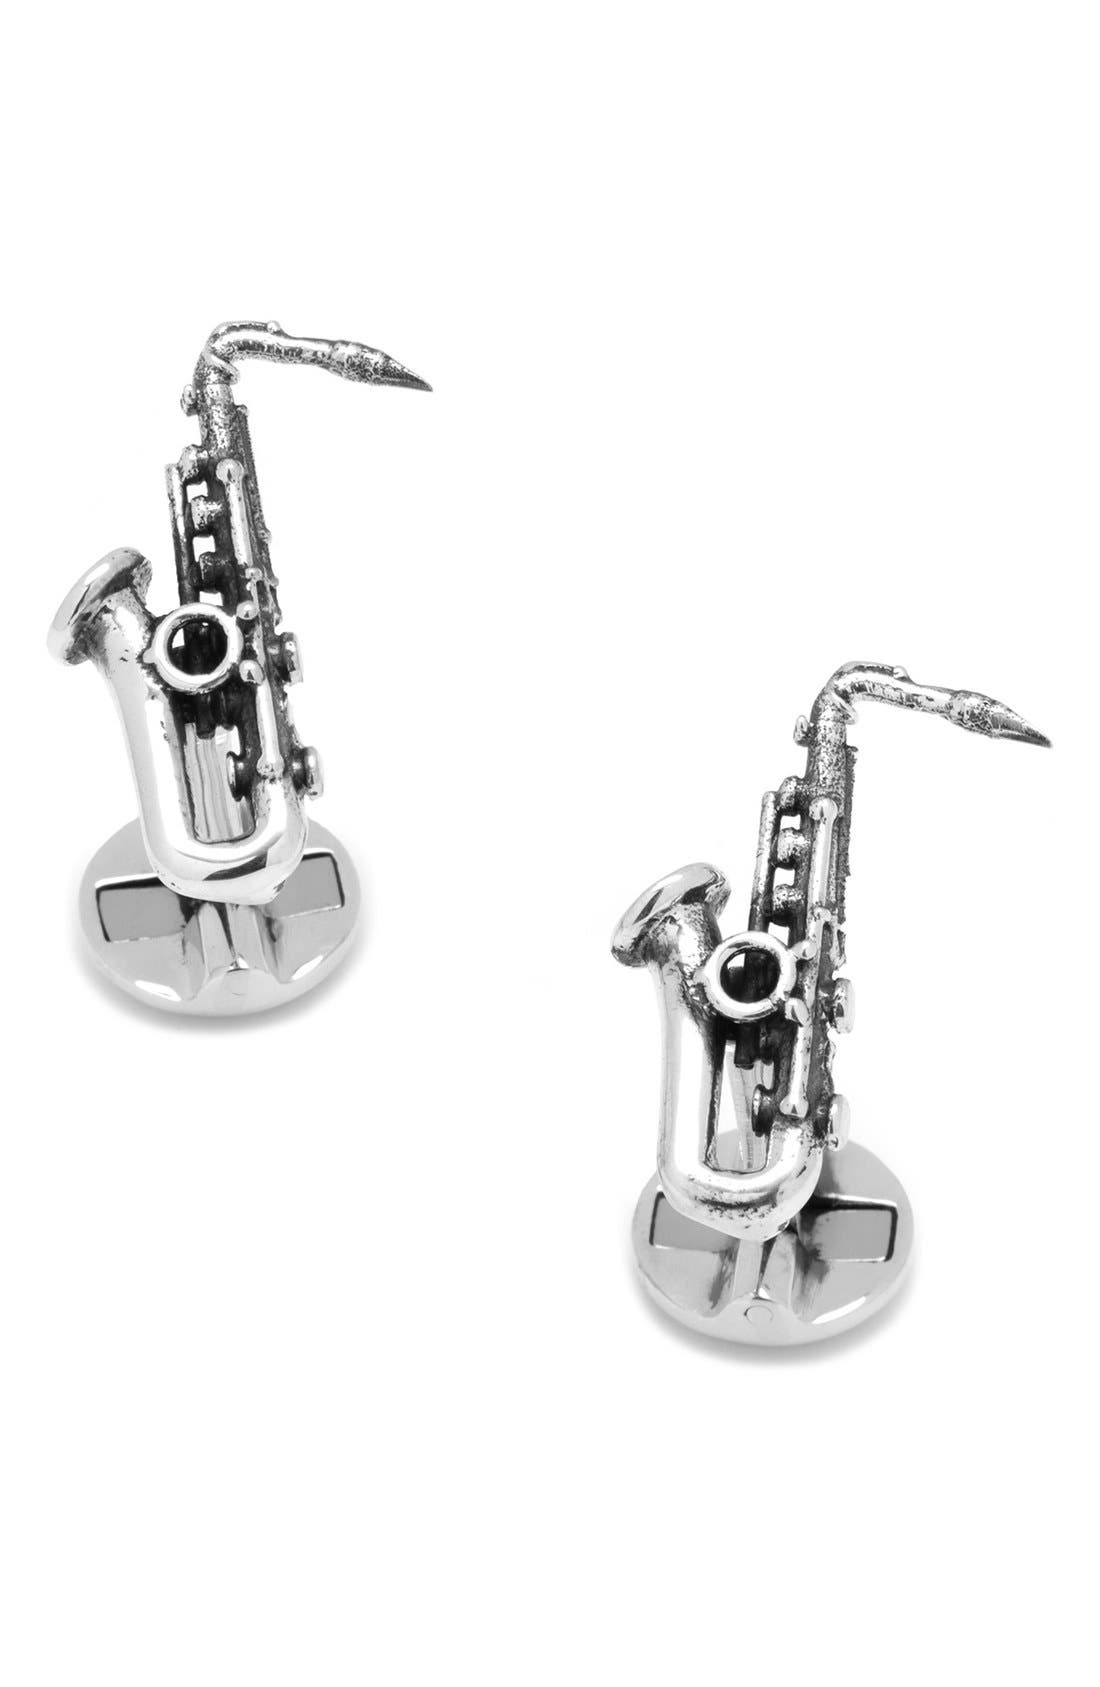 OX AND BULL TRADING CO. Saxophone Cuff Links